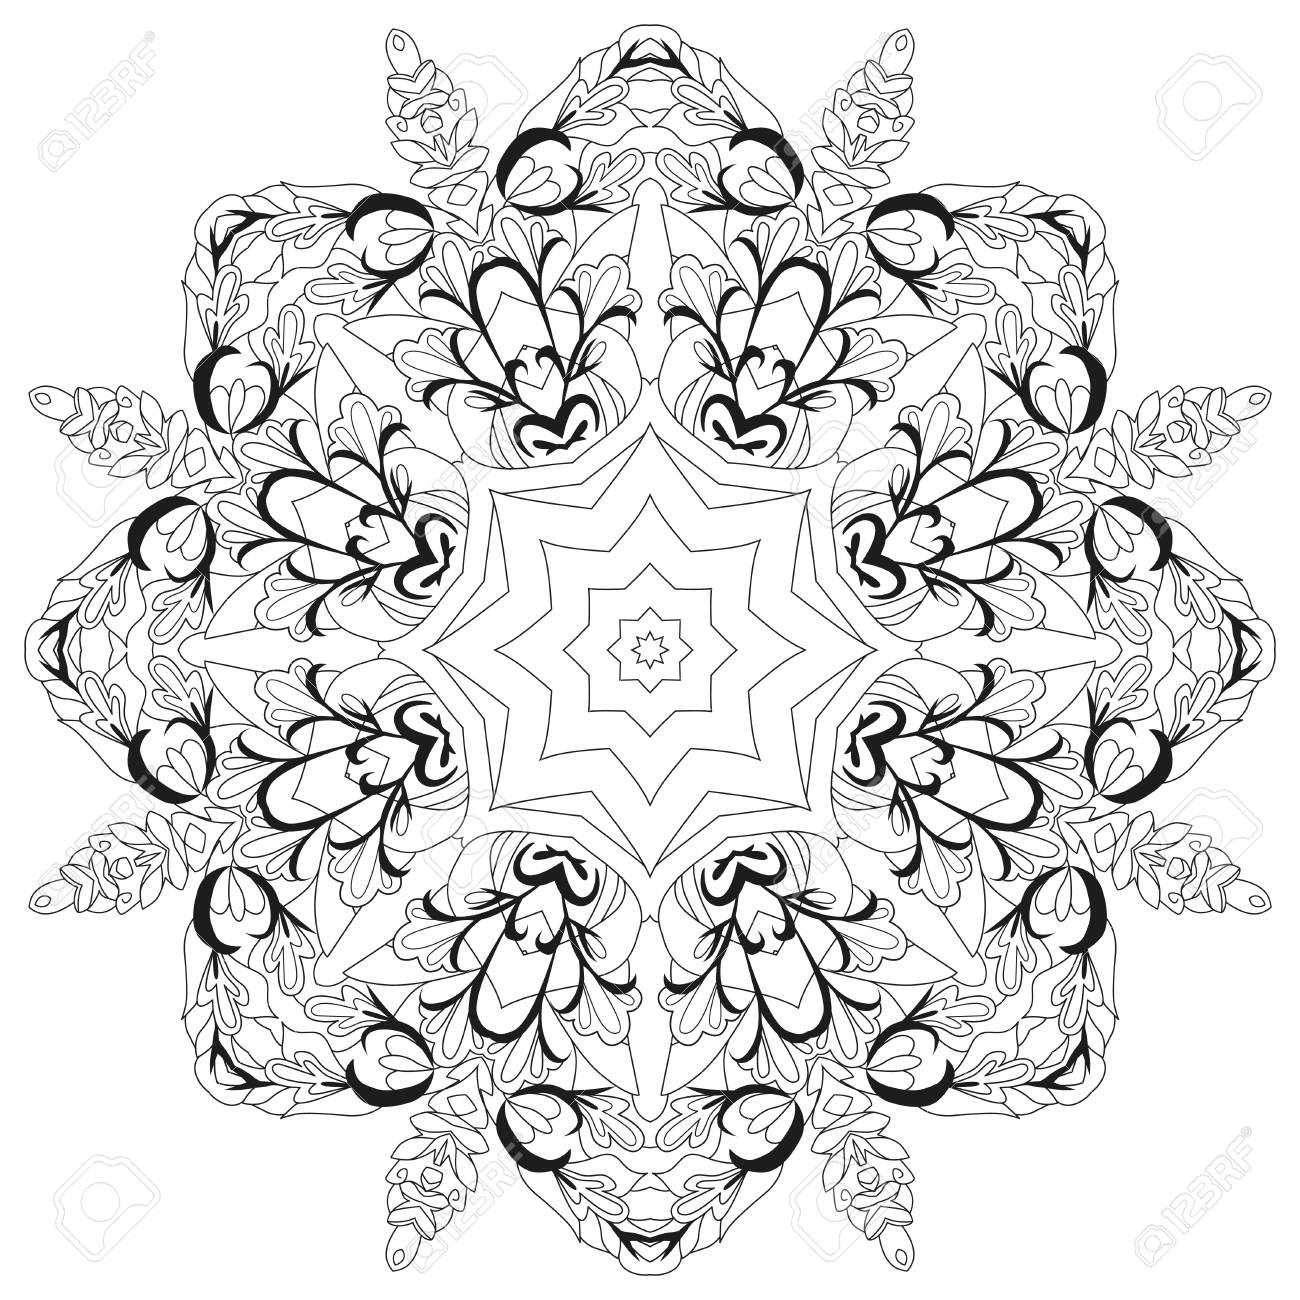 Vector Adult Coloring Book Textures. Hand-painted art design. Adult anti-stress coloring page. Black and white hand drawn illustration for coloring book. - 121450861